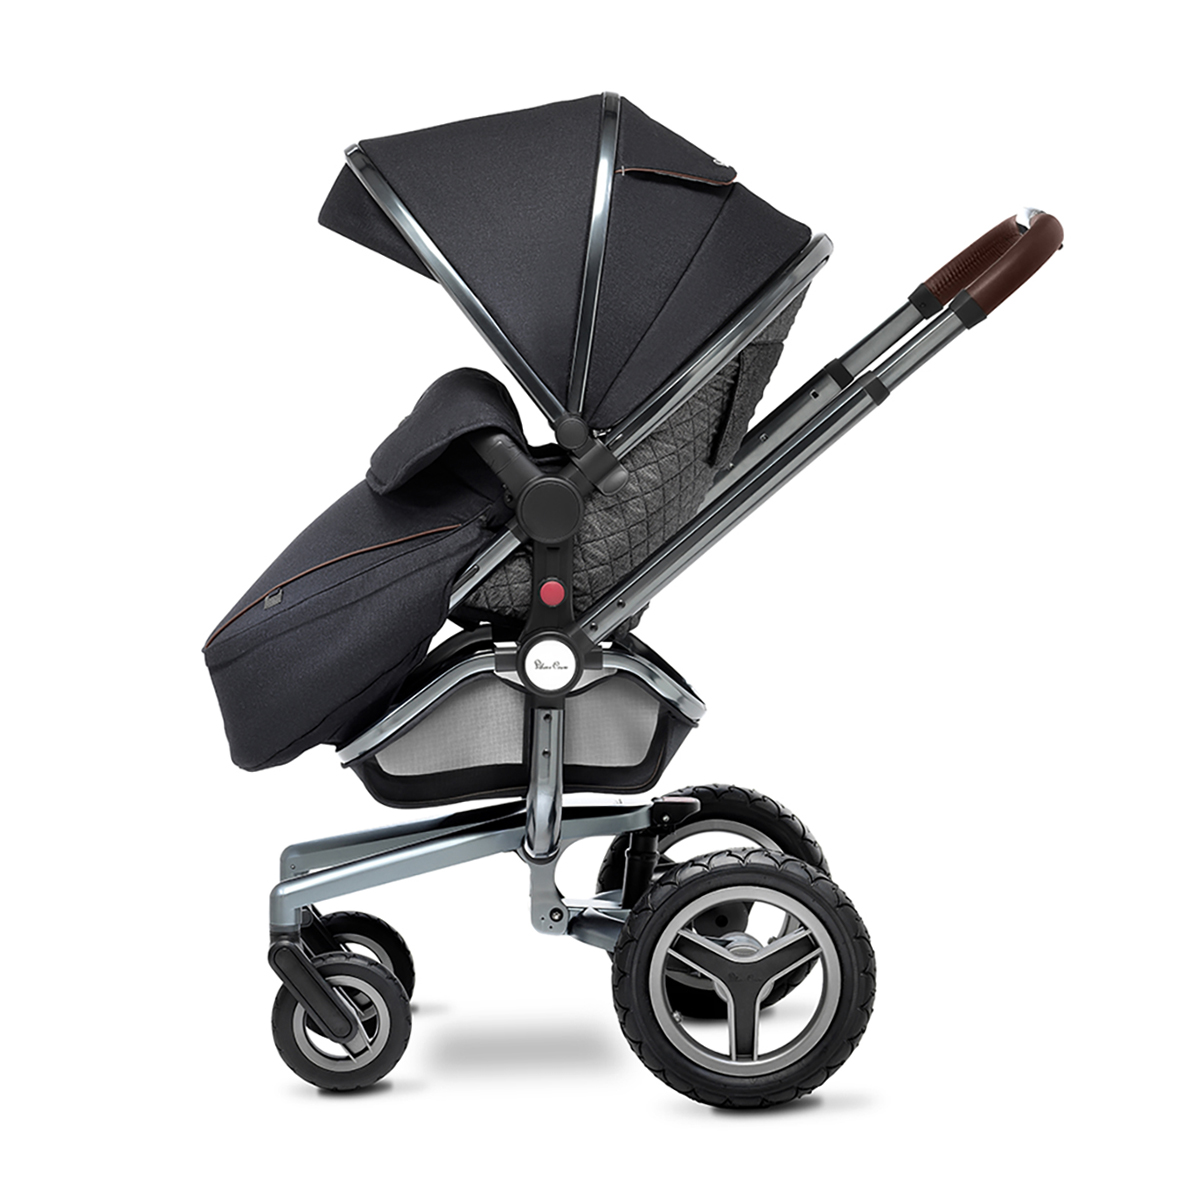 Pushchair Mode